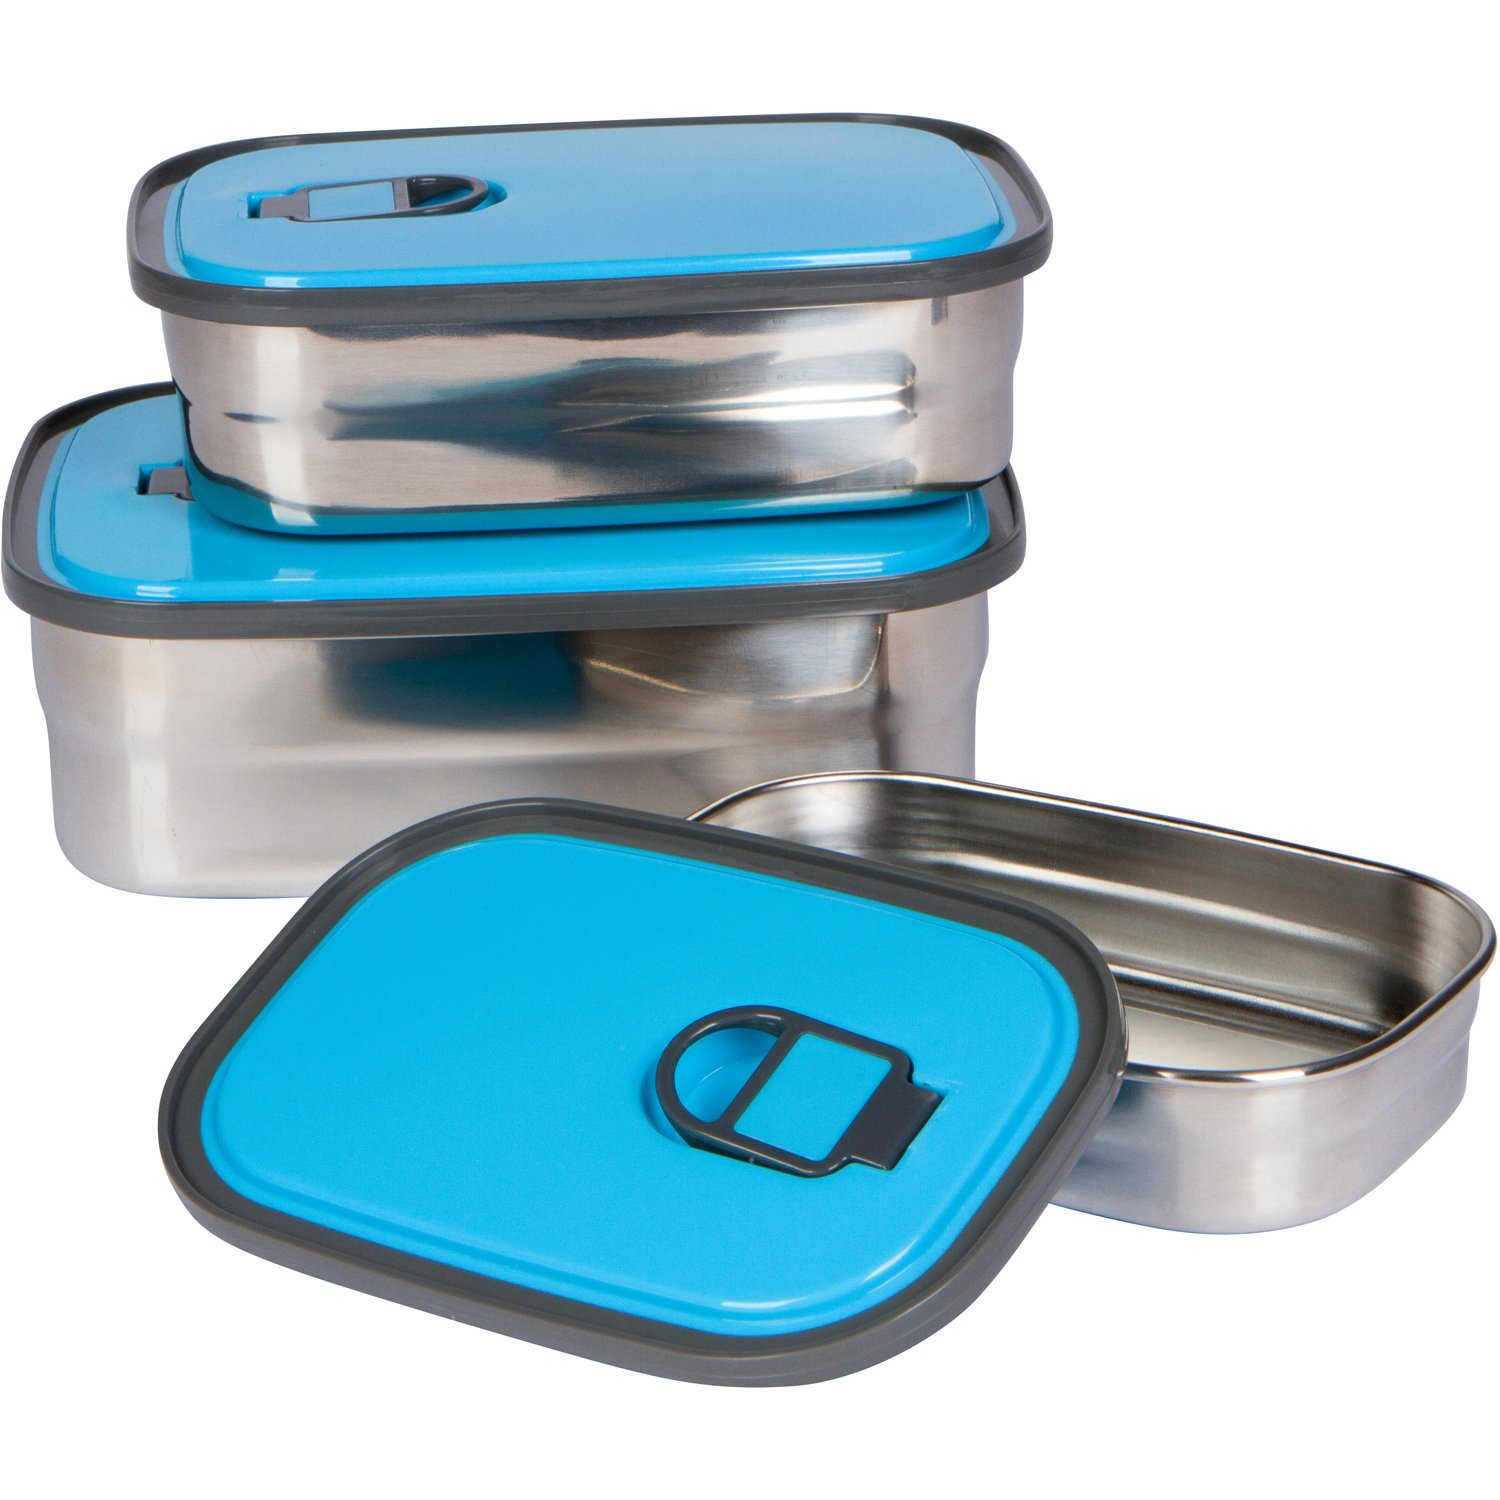 Bambusa Stainless Steel Lunch Food Containers Bento Box, Leak Proof Seal, Healthy, Kids, Adults, Outdoor Picnic Meals, BPA Free, Blue by Bambusa